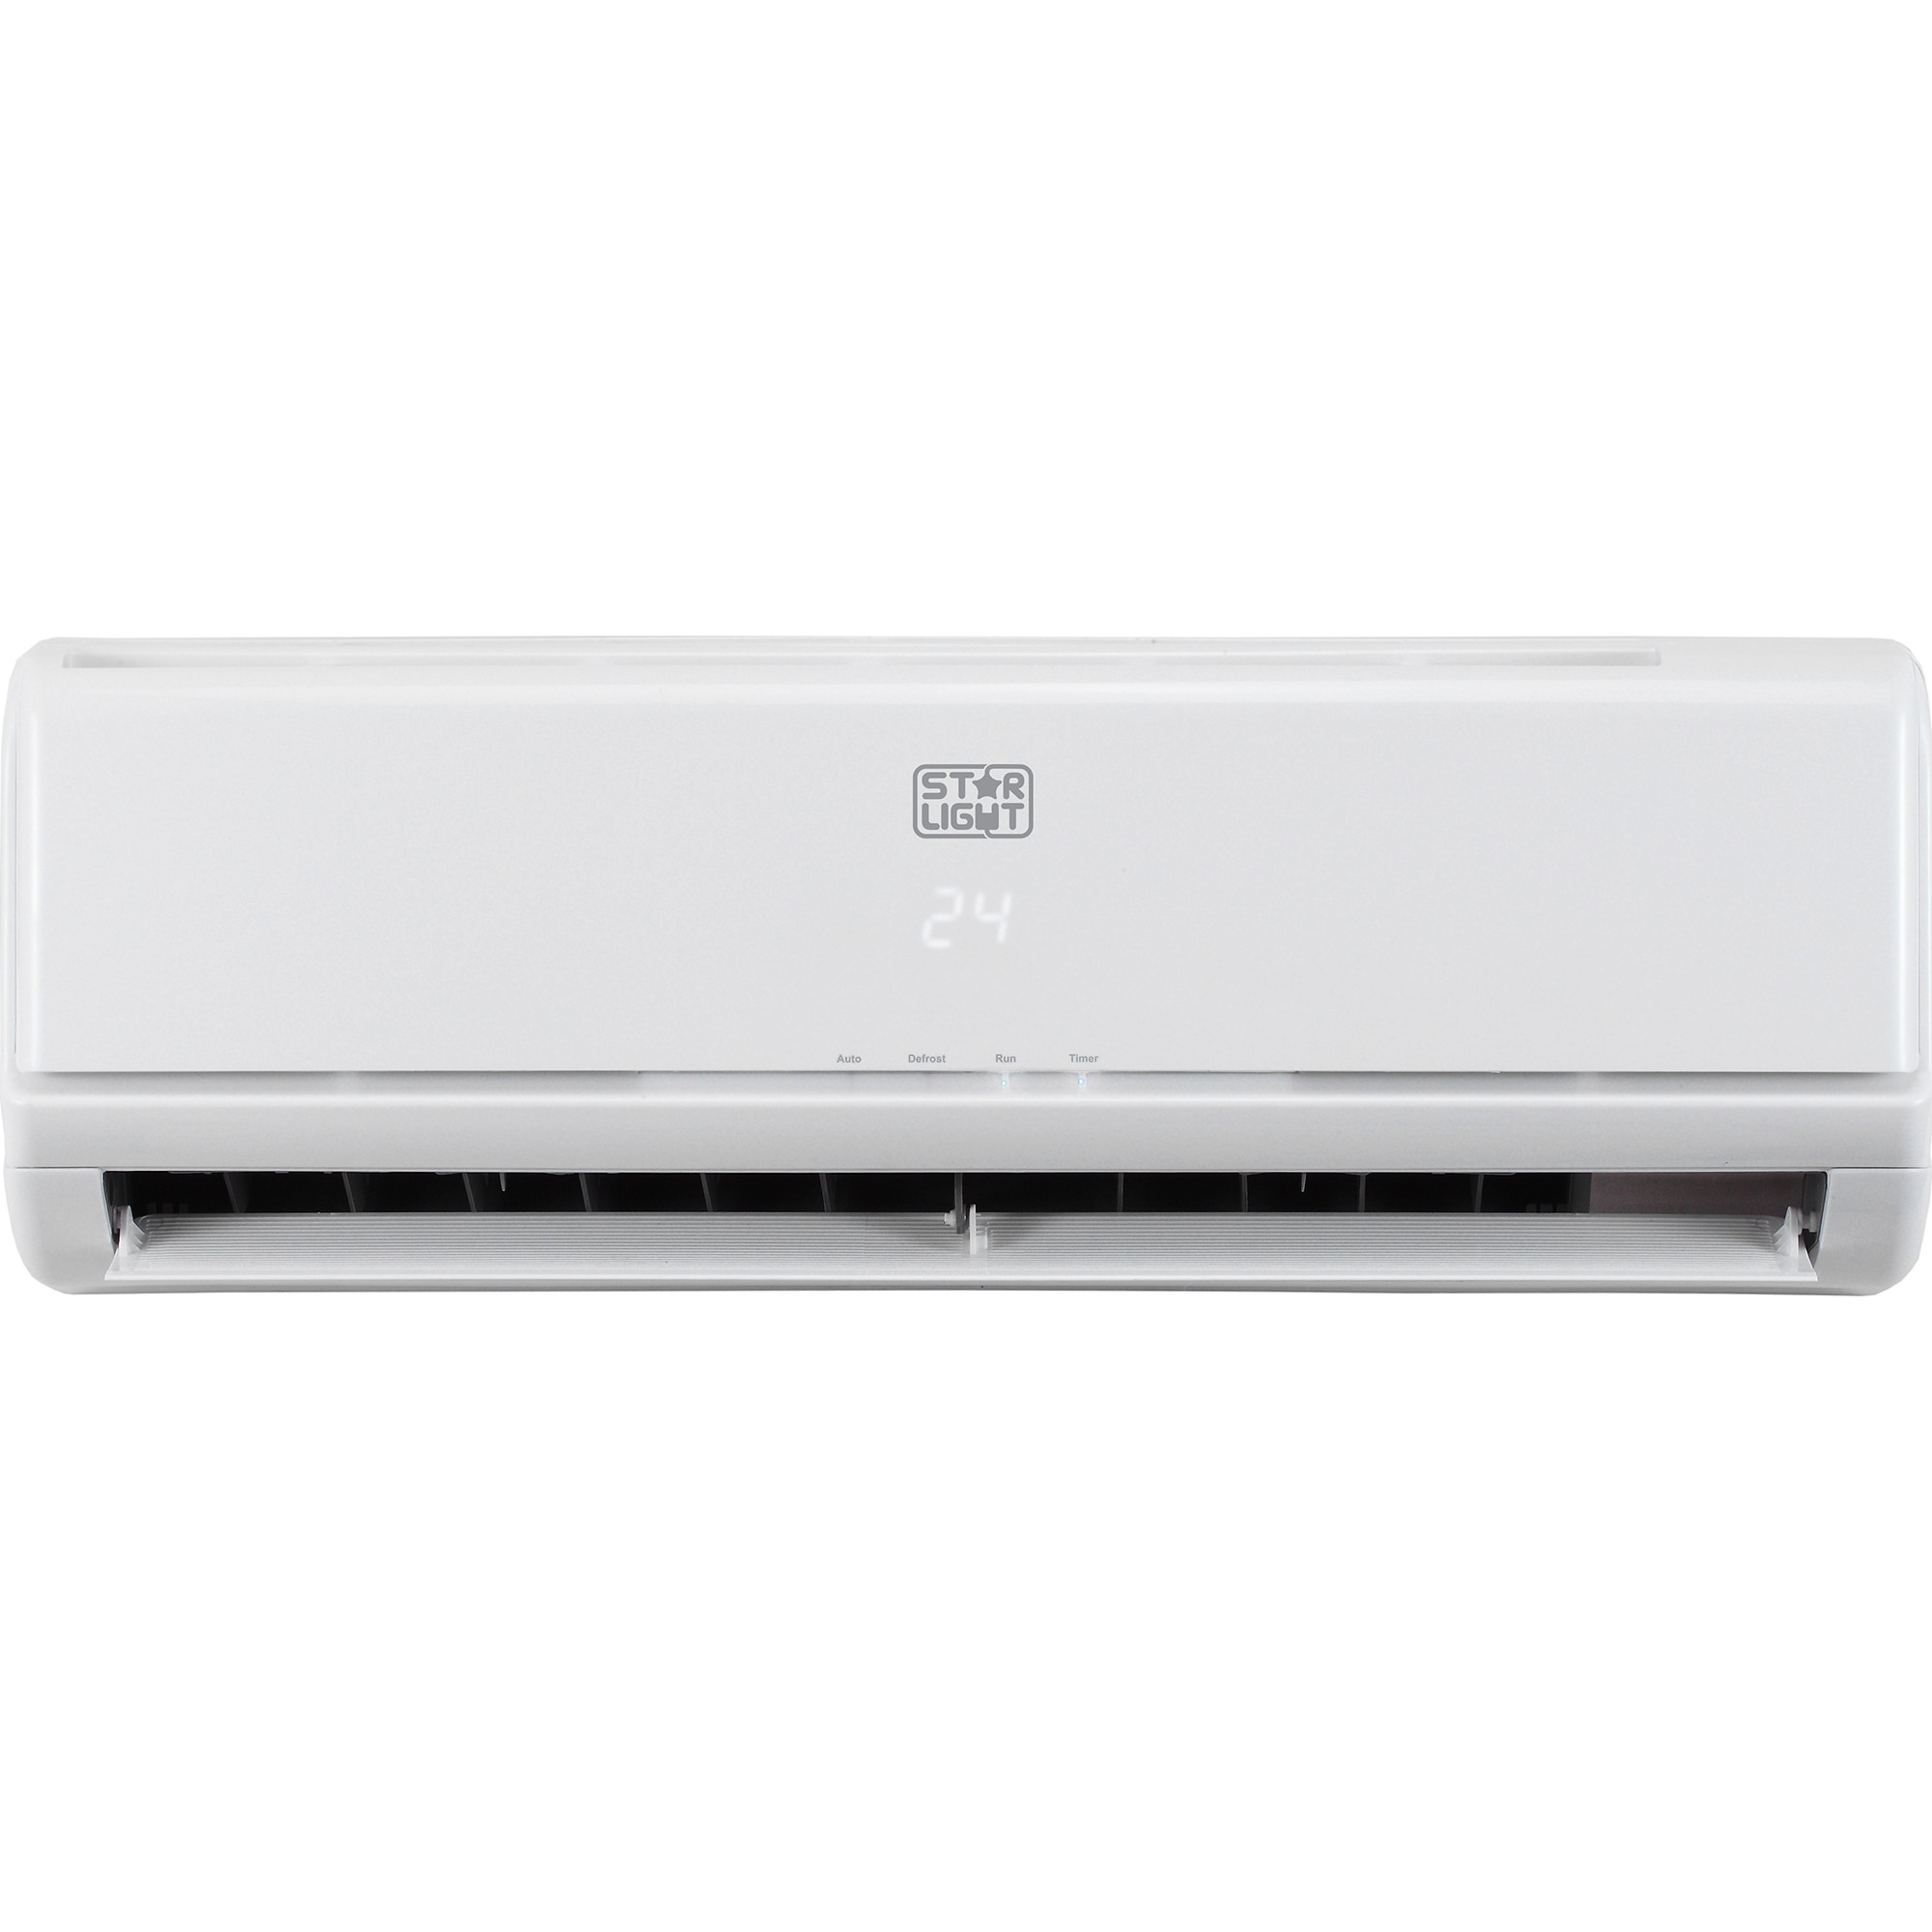 Fotografie Aparat de aer conditionat Star-Light ACM-18BIN, Inverter, 18000 BTU, Clasa A++, Display, Alb, Kit instalare inclus